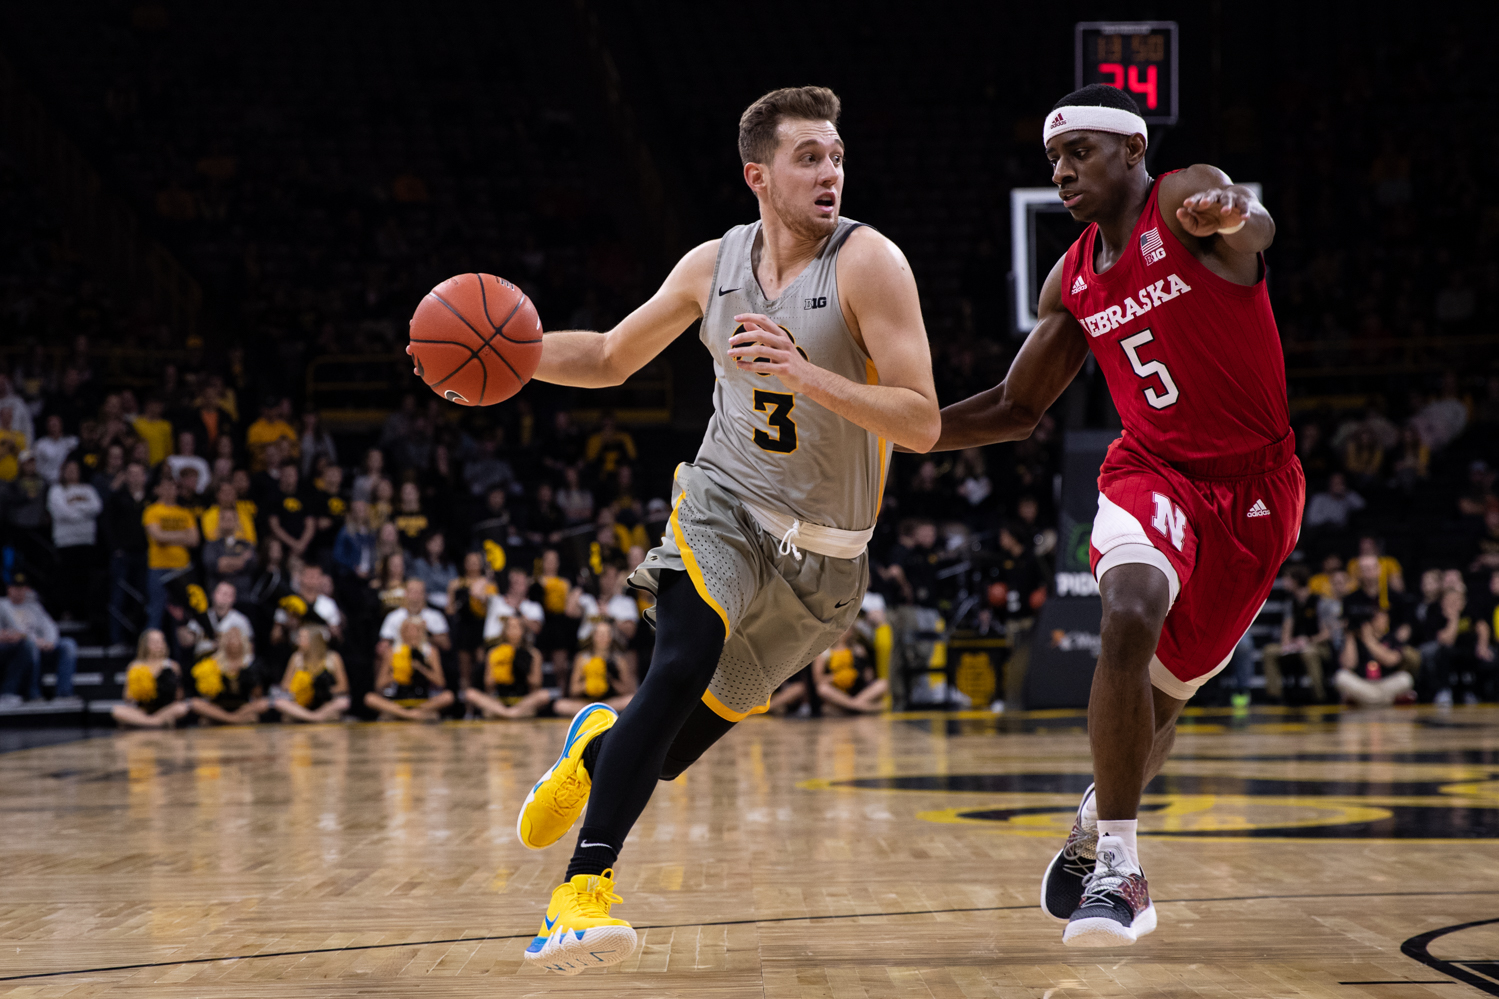 Iowa guard Jordan Bohannon drives to the basket during Iowa's game against Nebraska at Carver-Hawkeye Arena on Sunday, January 6, 2019. The Hawkeyes defeated the Cornhuskers 93-84.